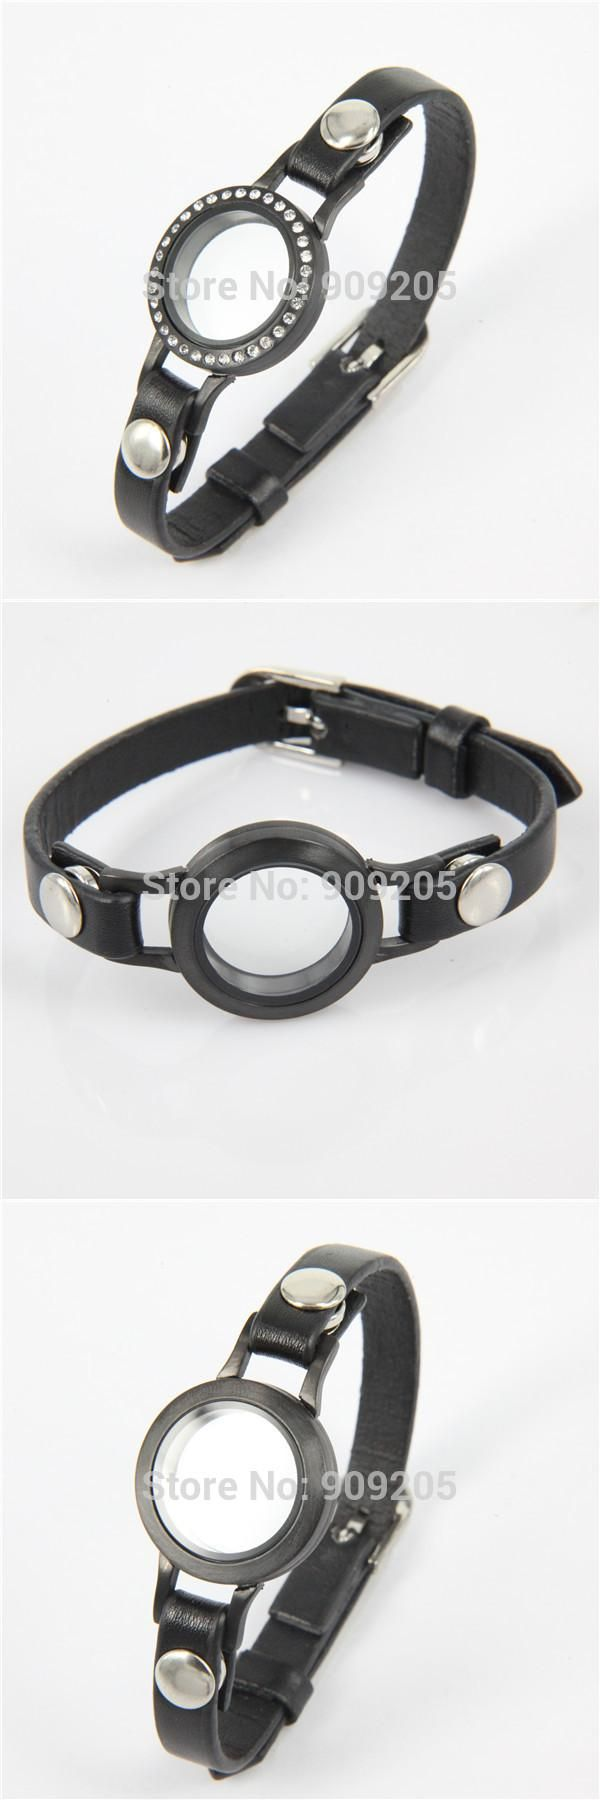 Hot Selling High Quality Black Floating Locket Bracelet for Men Women  1pcs/lot  FF195